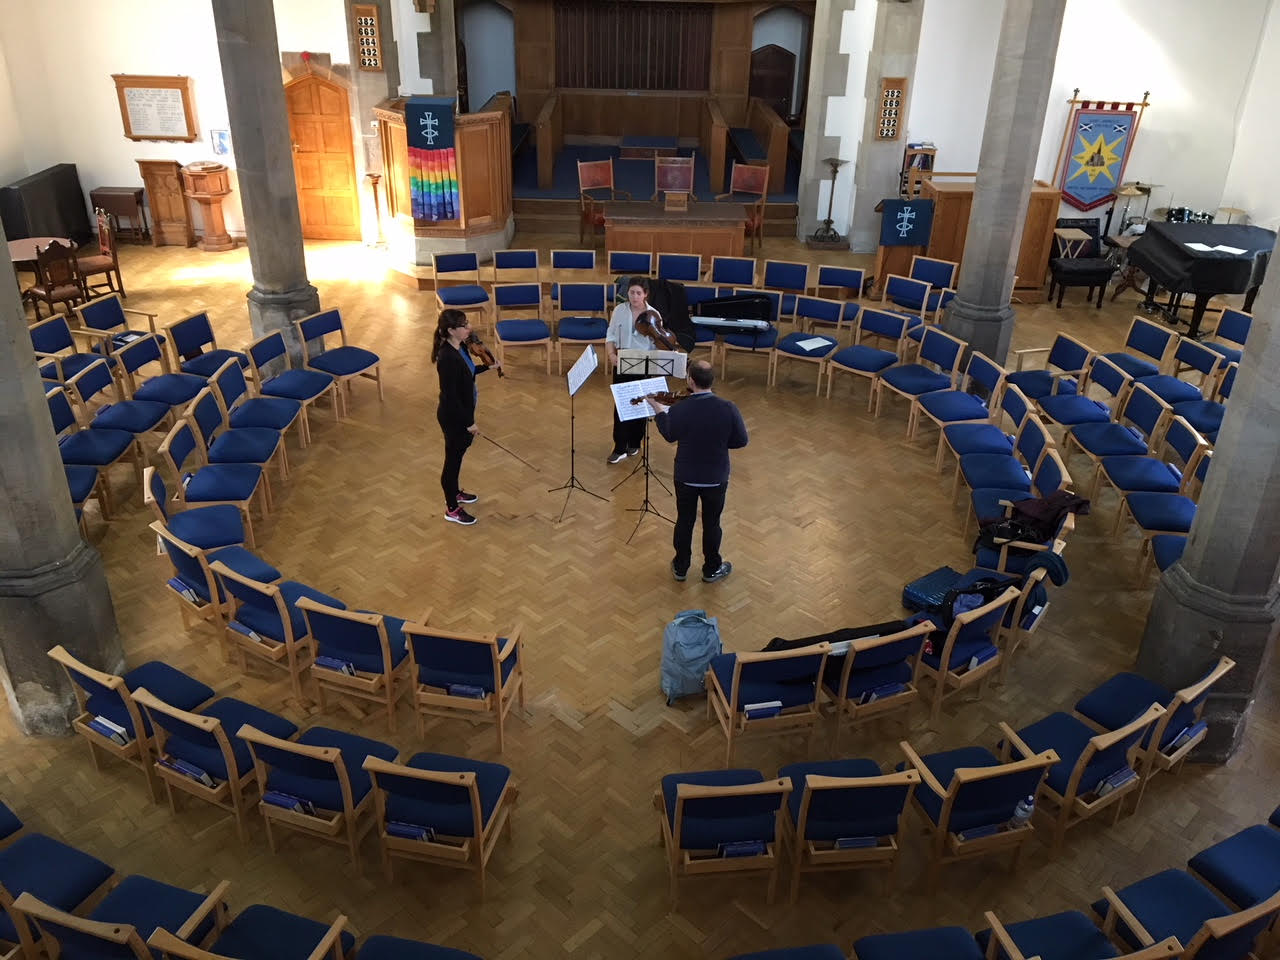 Music in the Round rehearsal at St Andrew's URC for their concert on 27 September, 2018 with the chairs in the round